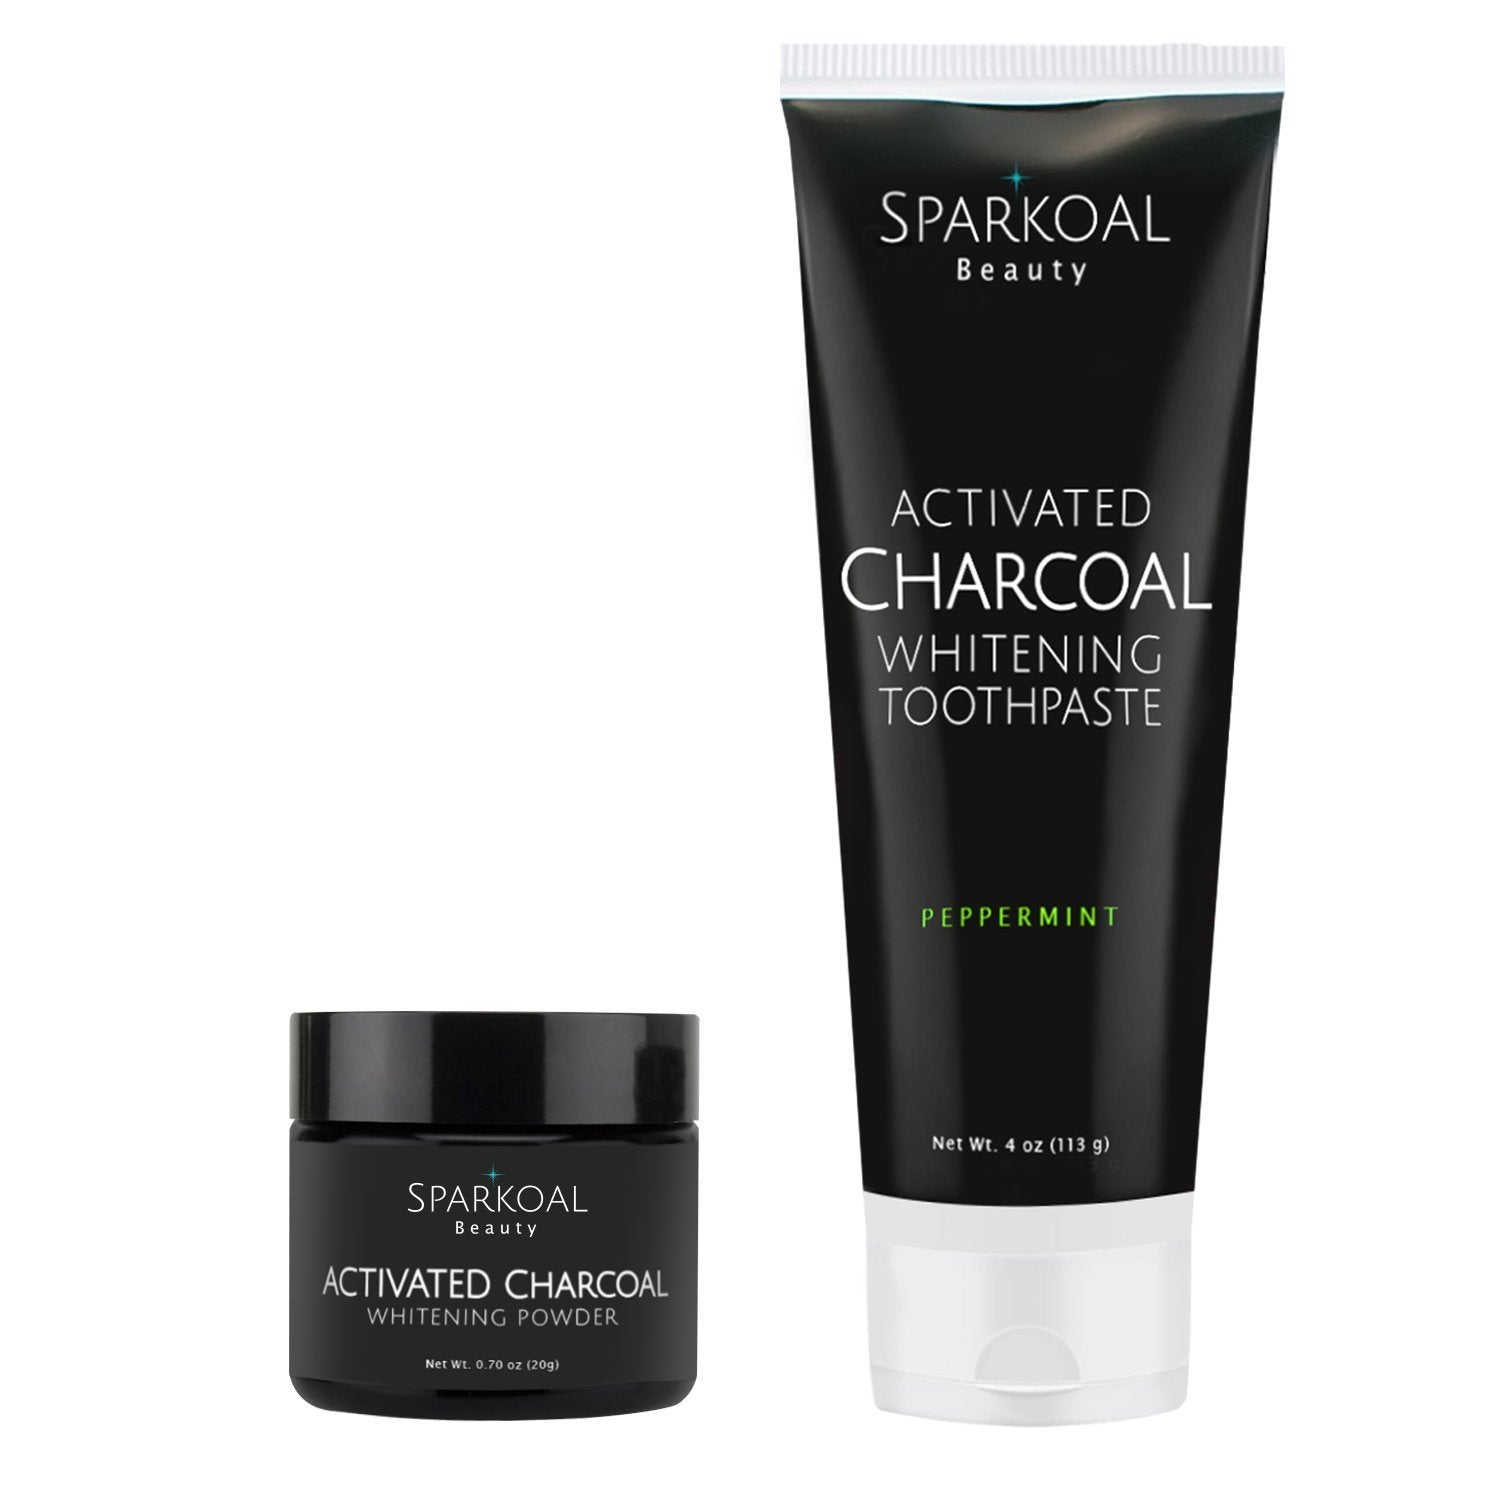 Activated Charcoal Teeth Whitening Powder And Toothpaste